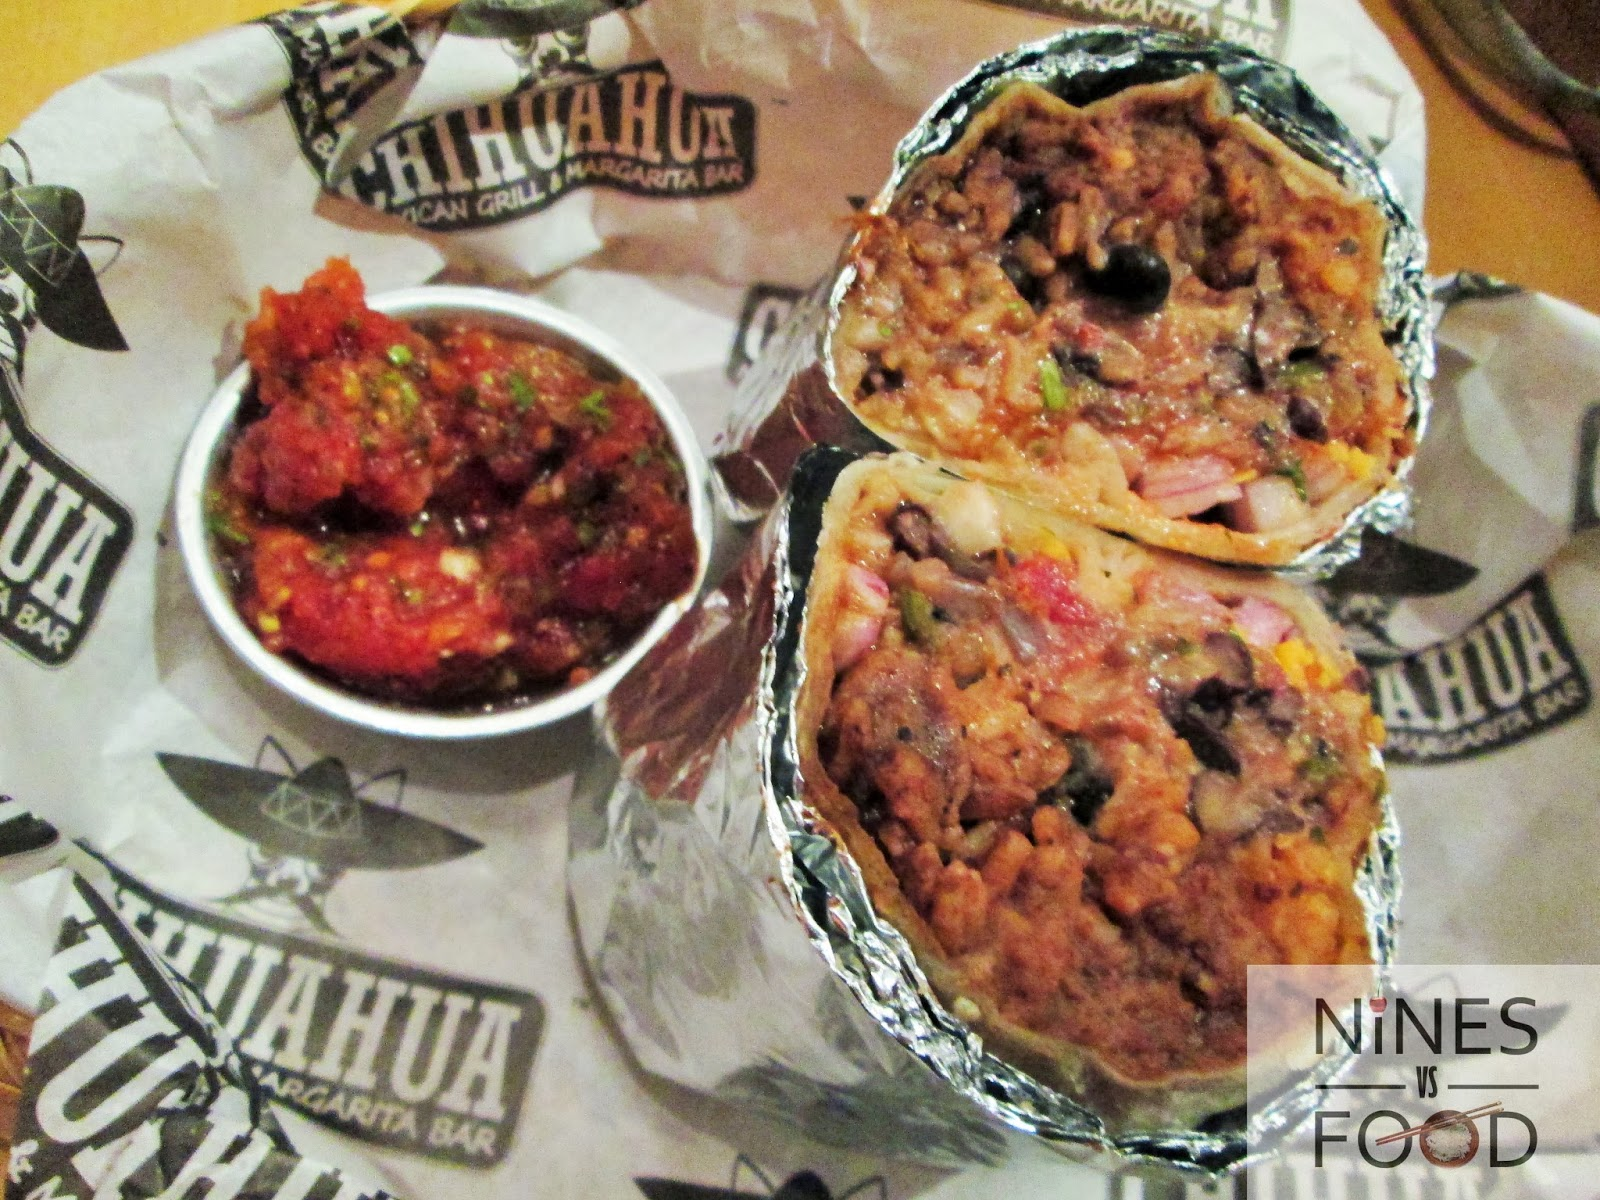 Nines vs. Food - Chihuahua Mexican Grill and Margarita Bar Makati Avenue-16.jpg